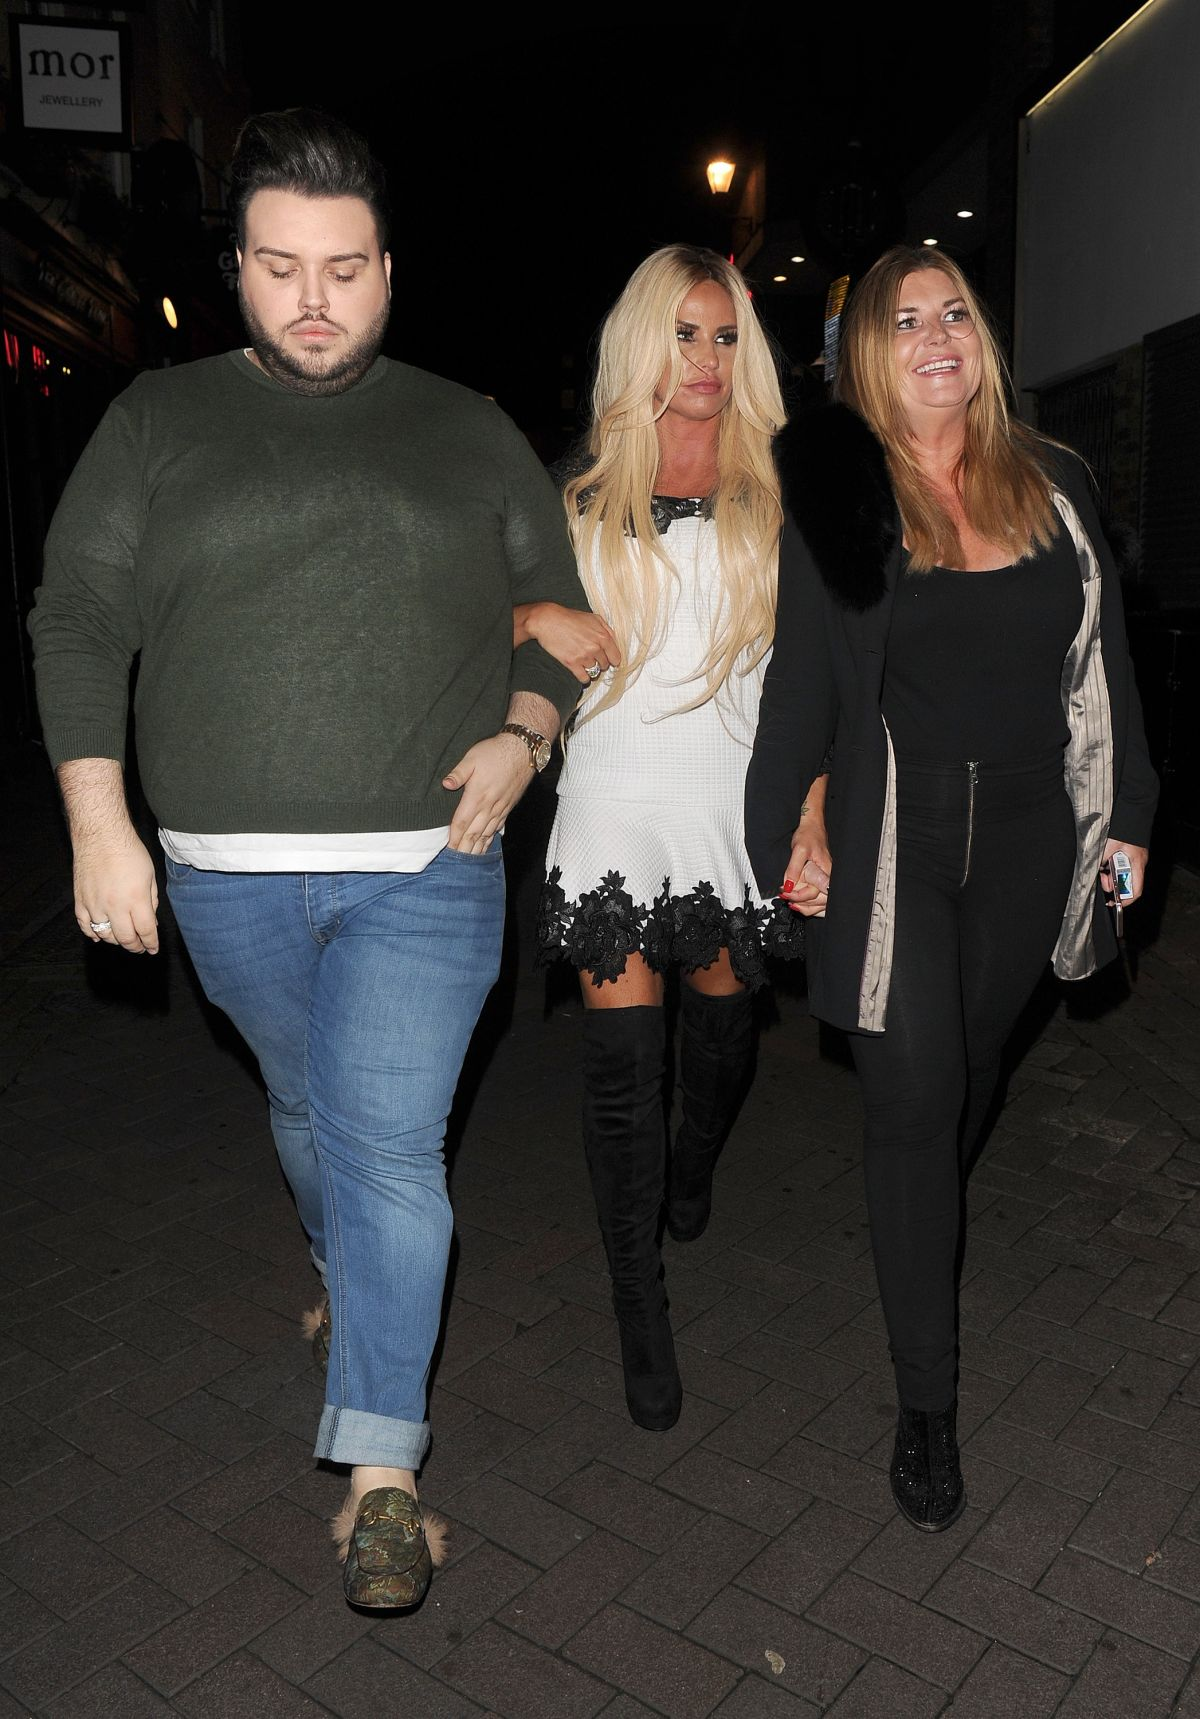 Katie Price Out for the evening in London   katie-price-out-for-the-evening-in-london_8